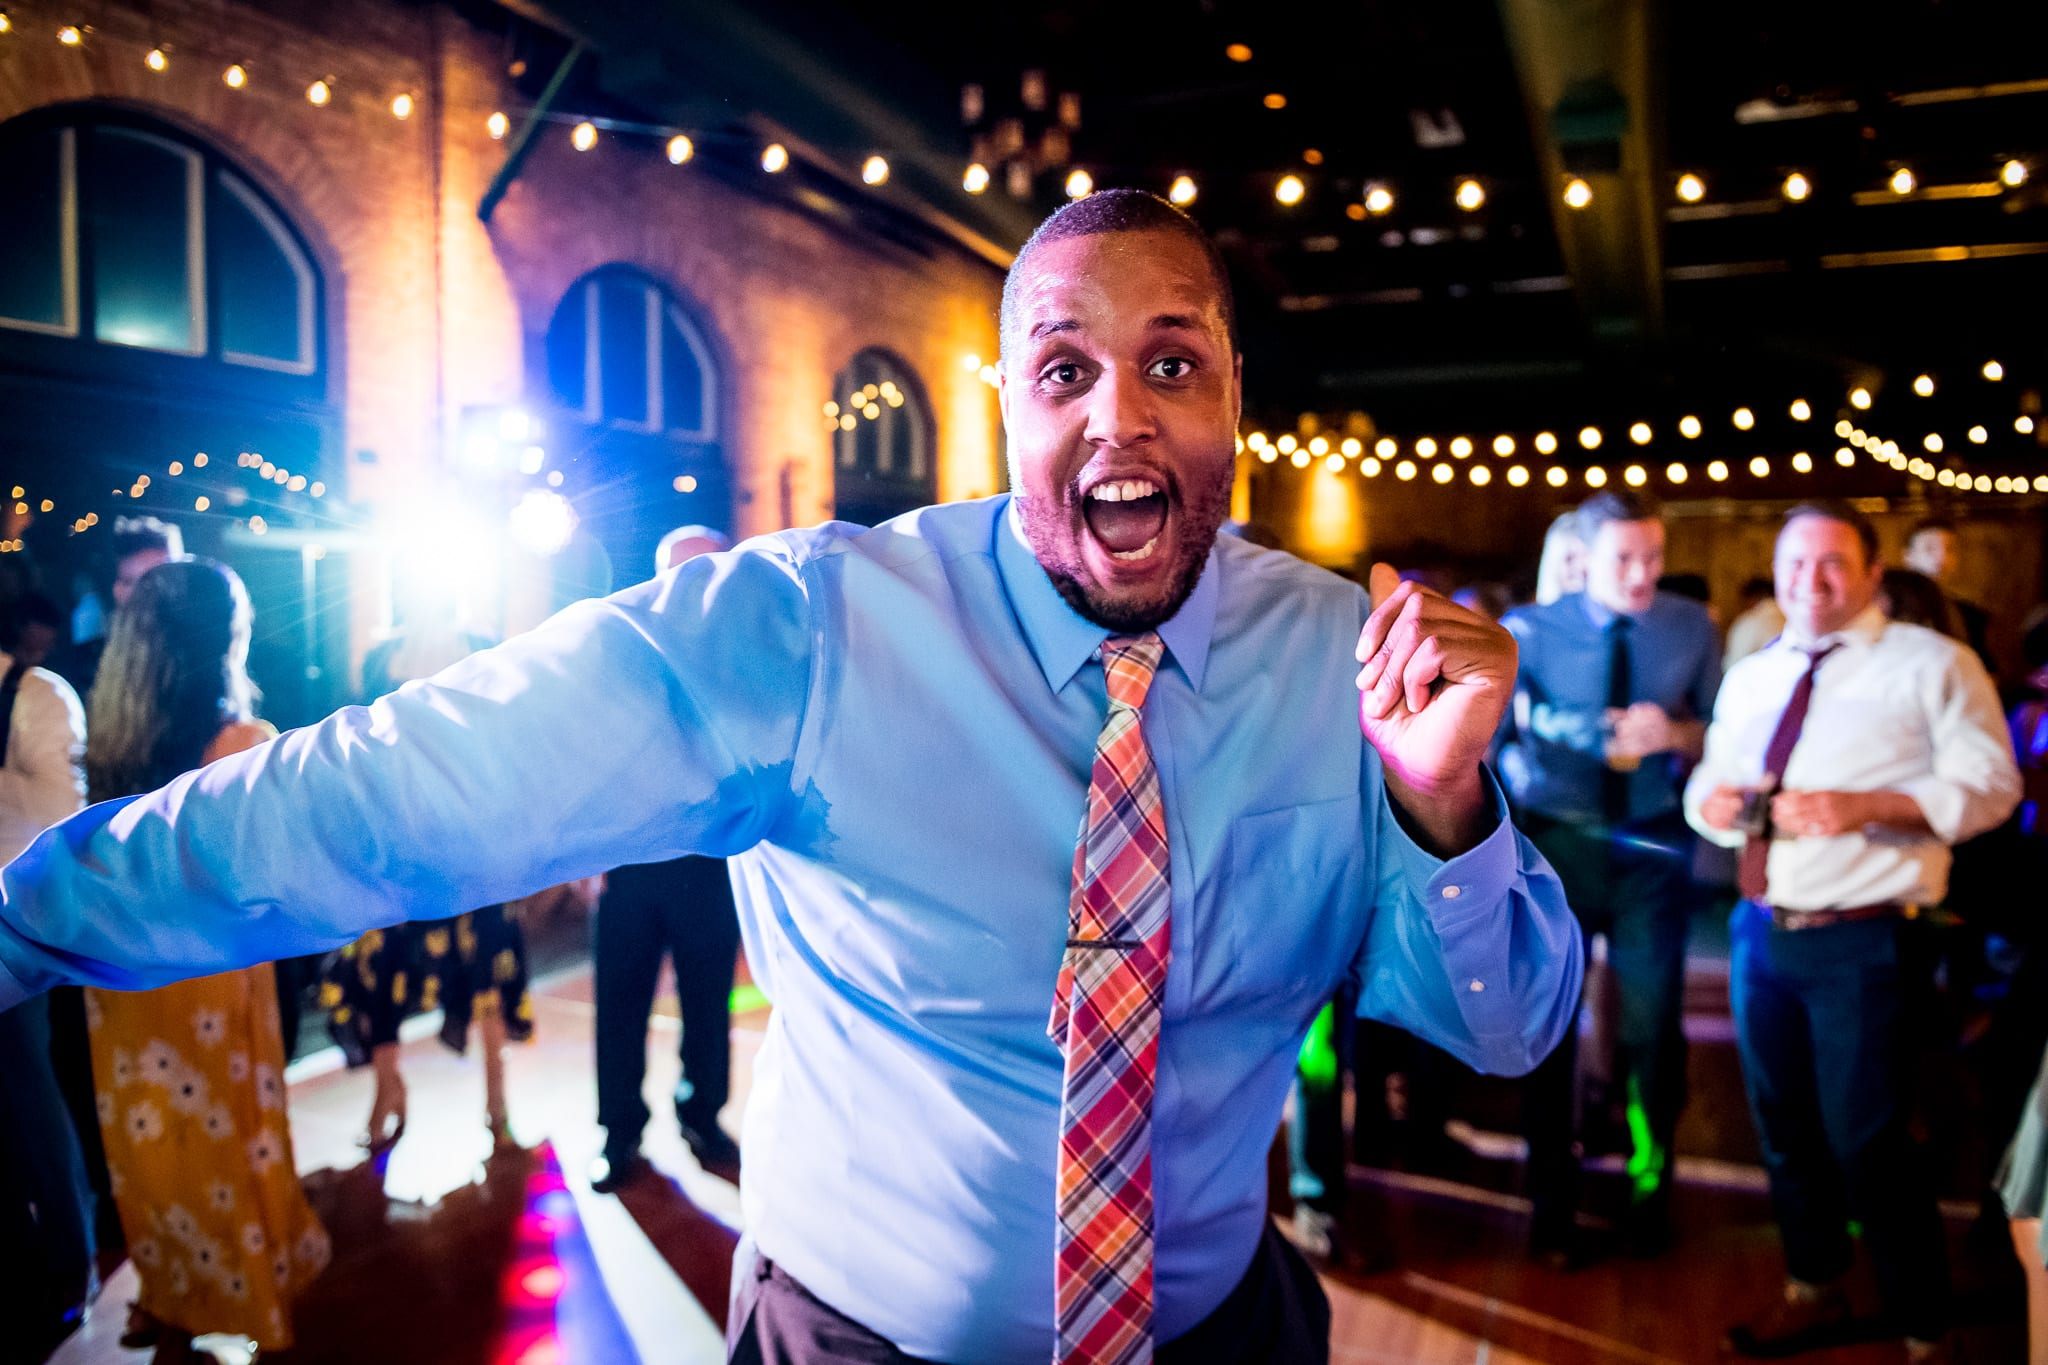 Happy and sweaty wedding guest dances and poses for a wide open smile on the middle of the dance floor